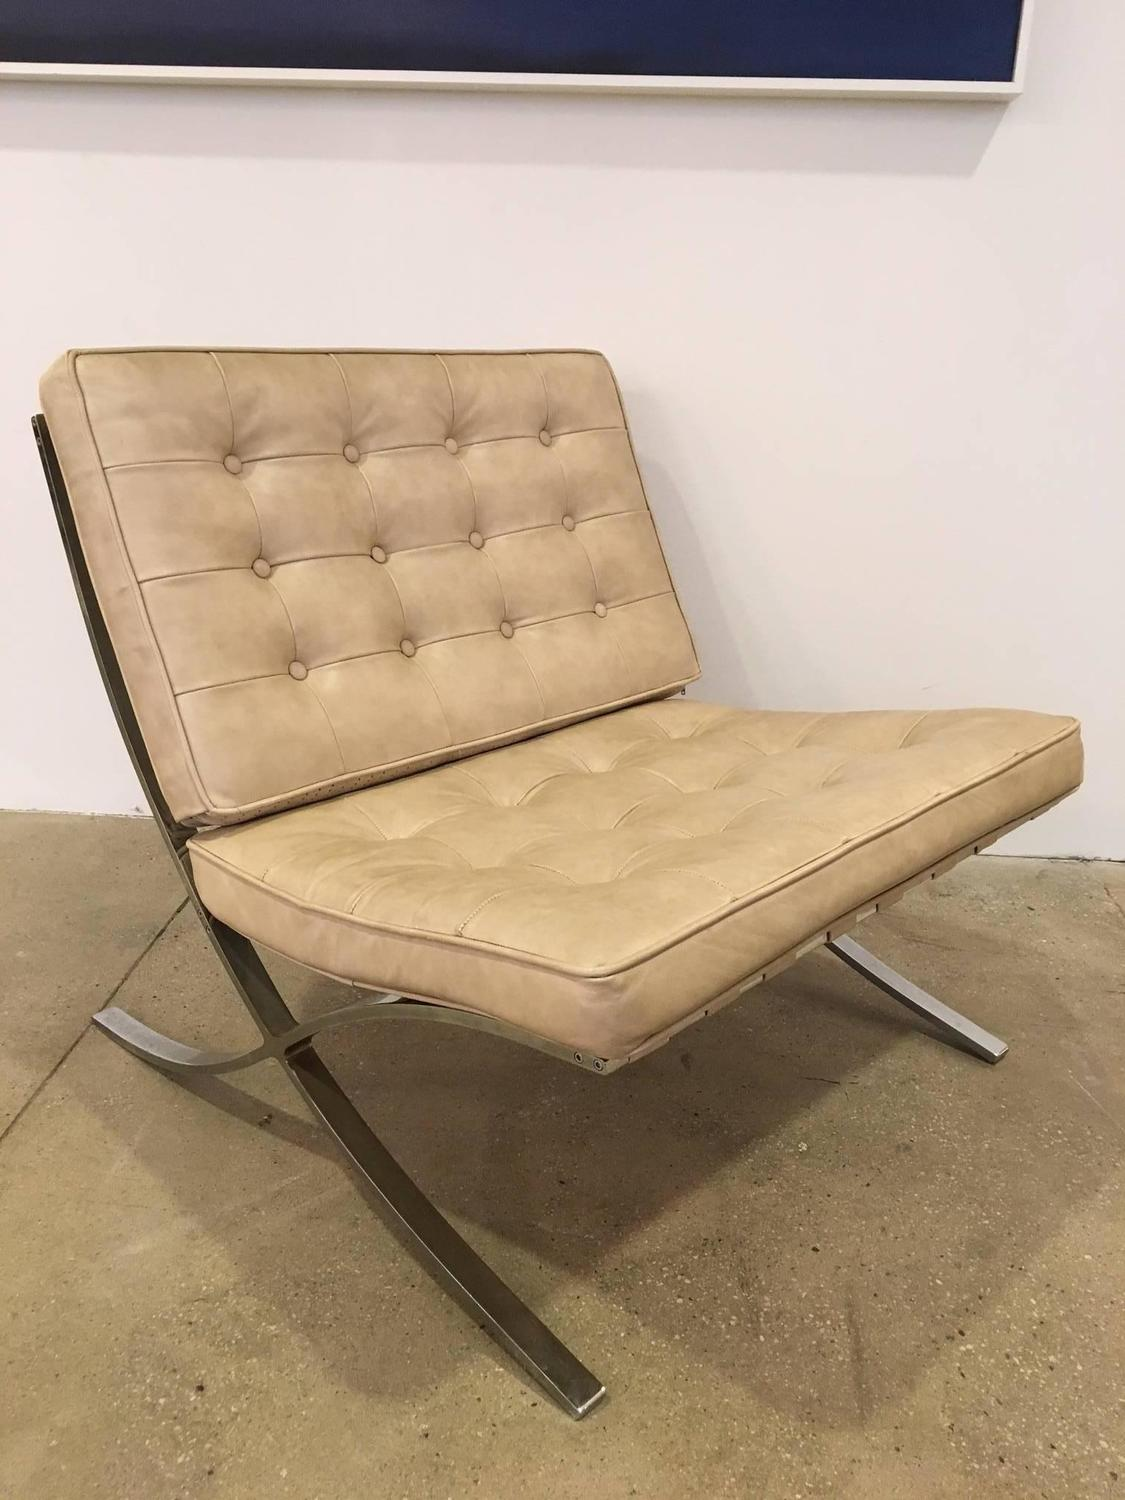 barcelona chairs for sale leggett and platt chair parts pair of vintage mies van der rohe